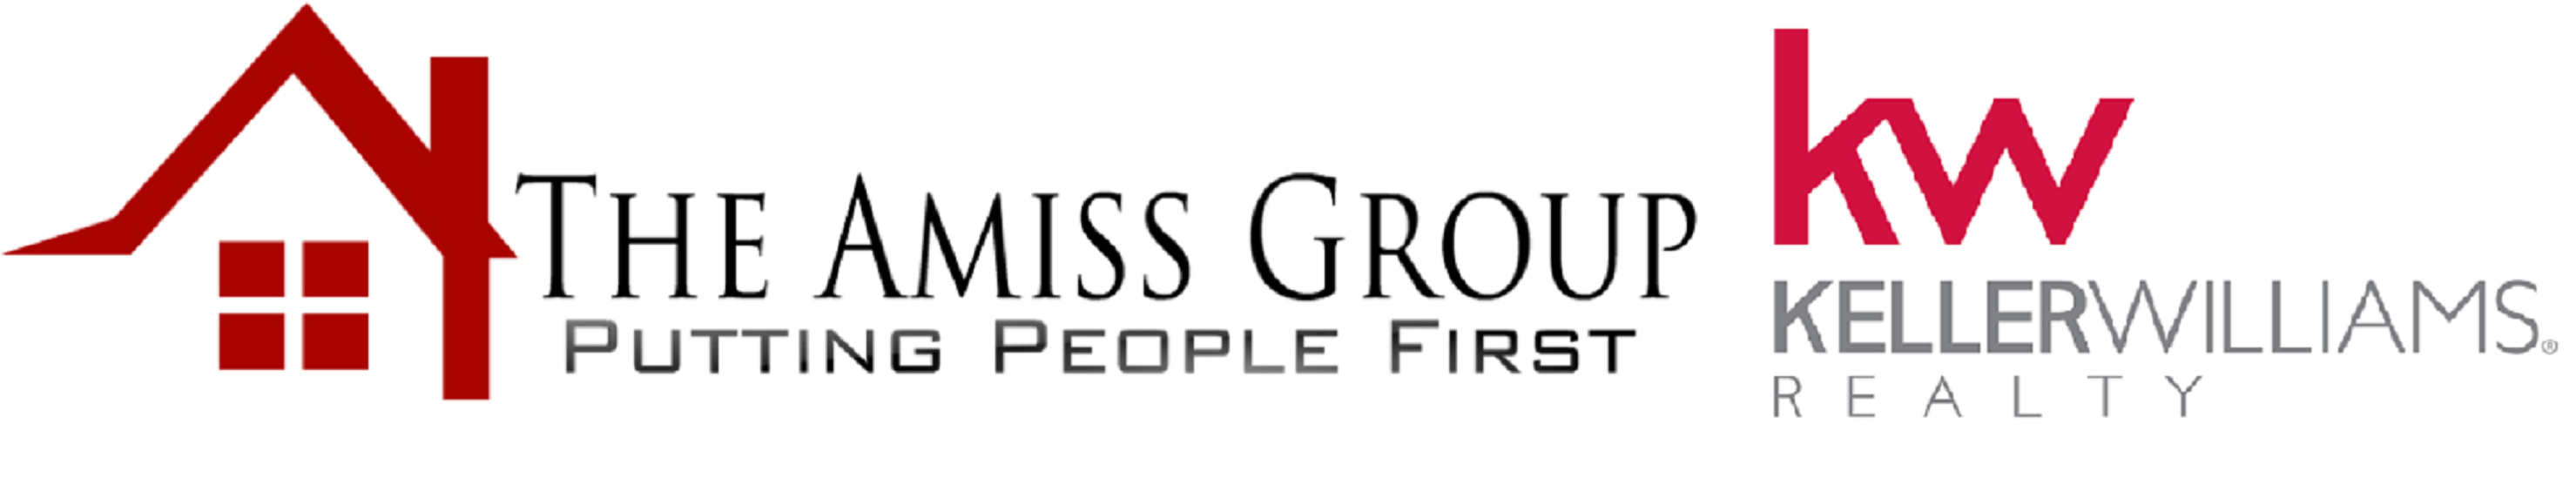 The Amiss Group